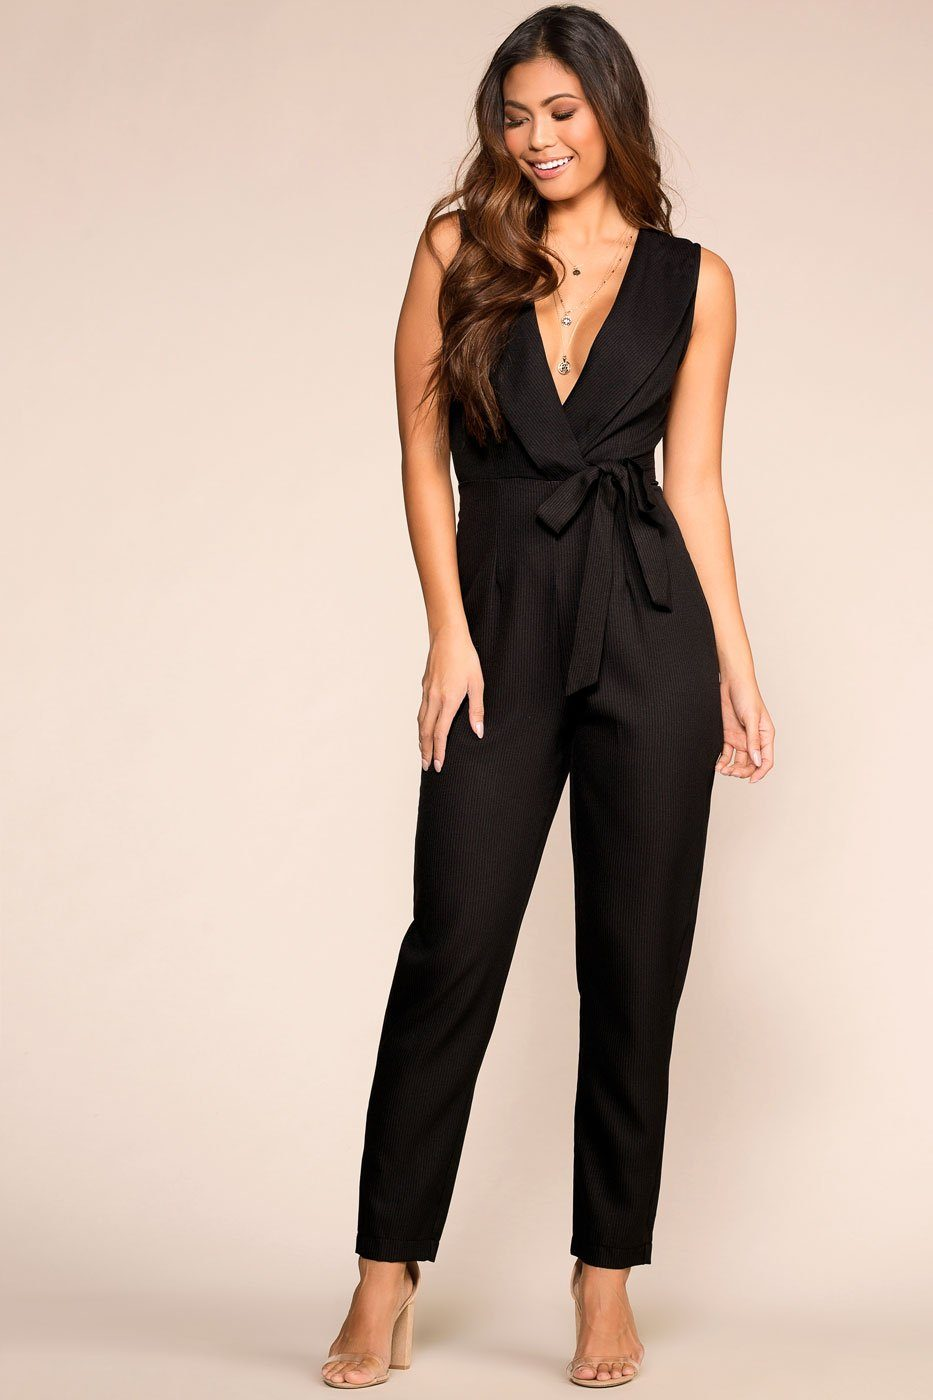 2cc4984692e ... Make It Work Black Jumpsuit